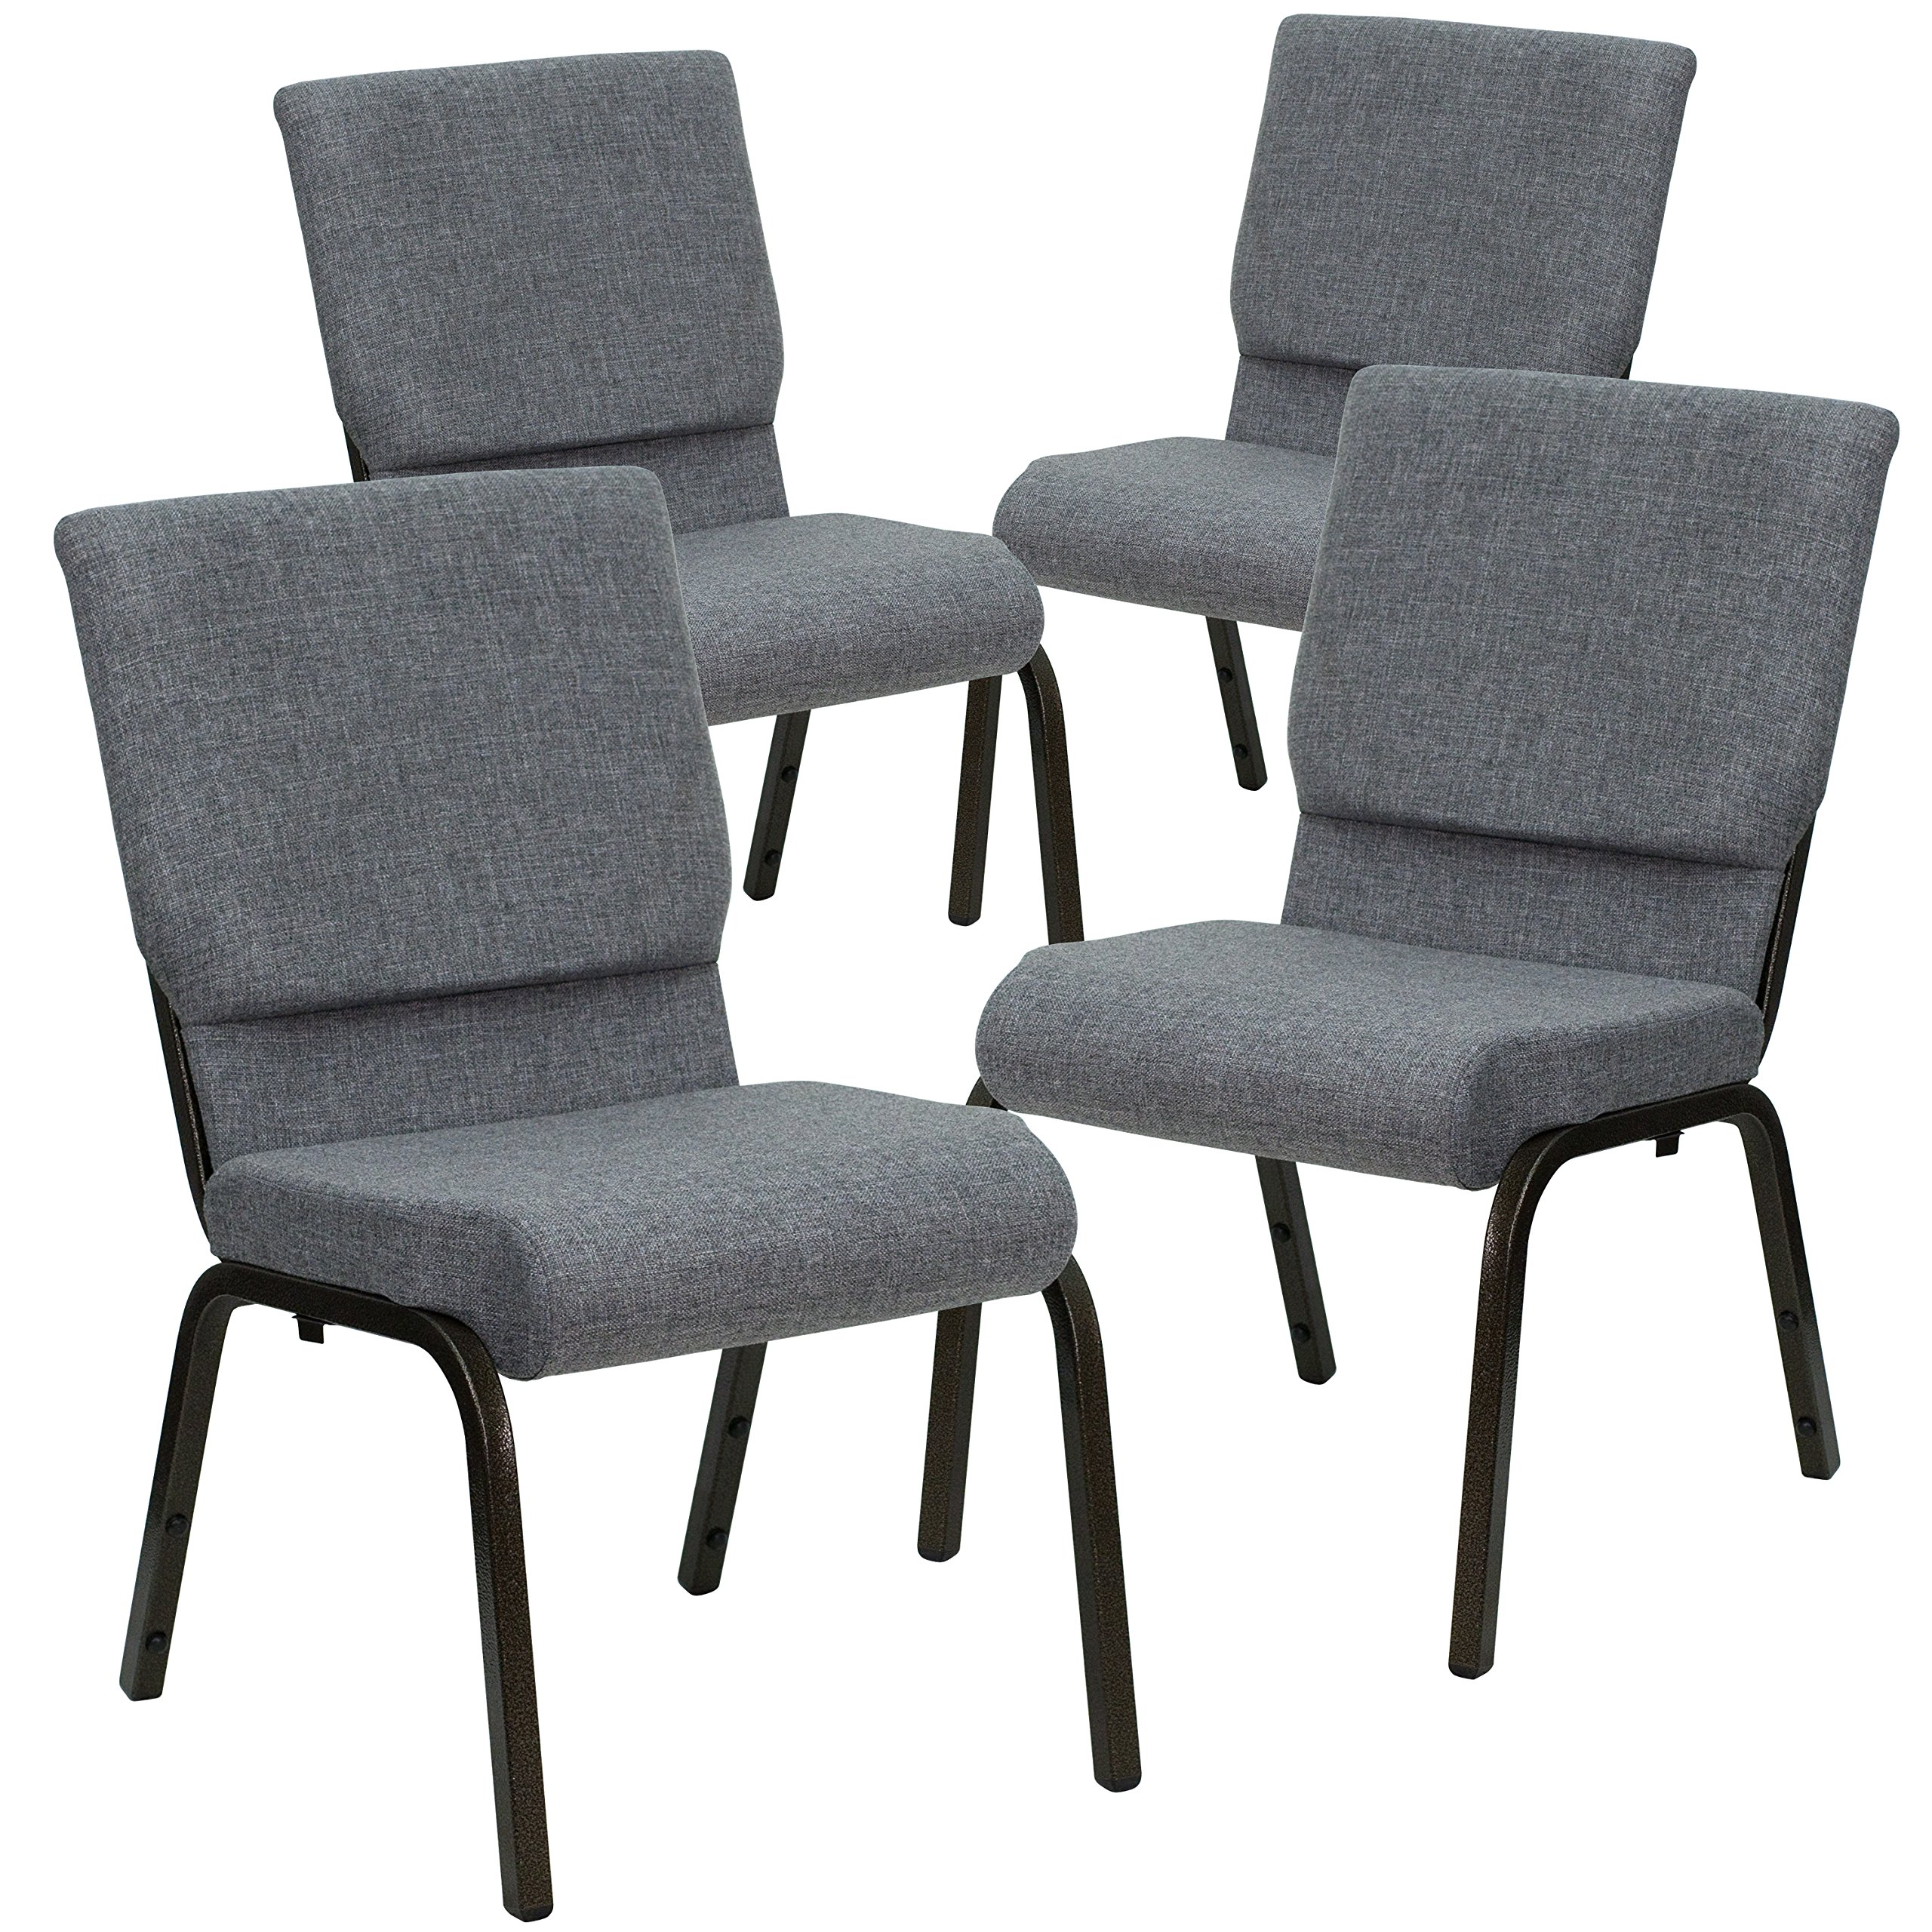 Flash Furniture 4 Pk. HERCULES Series 18.5''W Stacking Church Chair in Gray Fabric - Gold Vein Frame